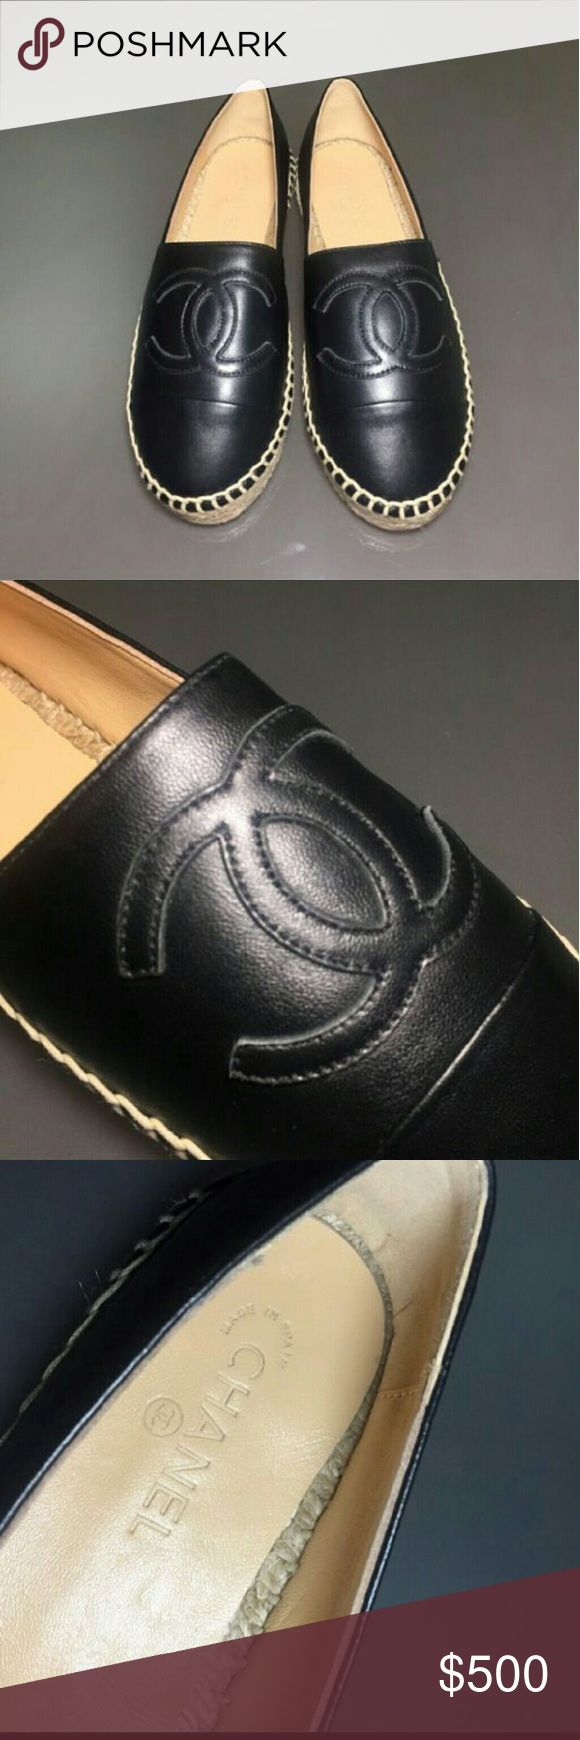 CHANEL Black Espadrilles Authentic New never worn chanel Black lambskin espadrilles size US 8.5 women US 6.5 The price is already the lowest so please be considerate Thank you CHANEL Shoes Espadrilles